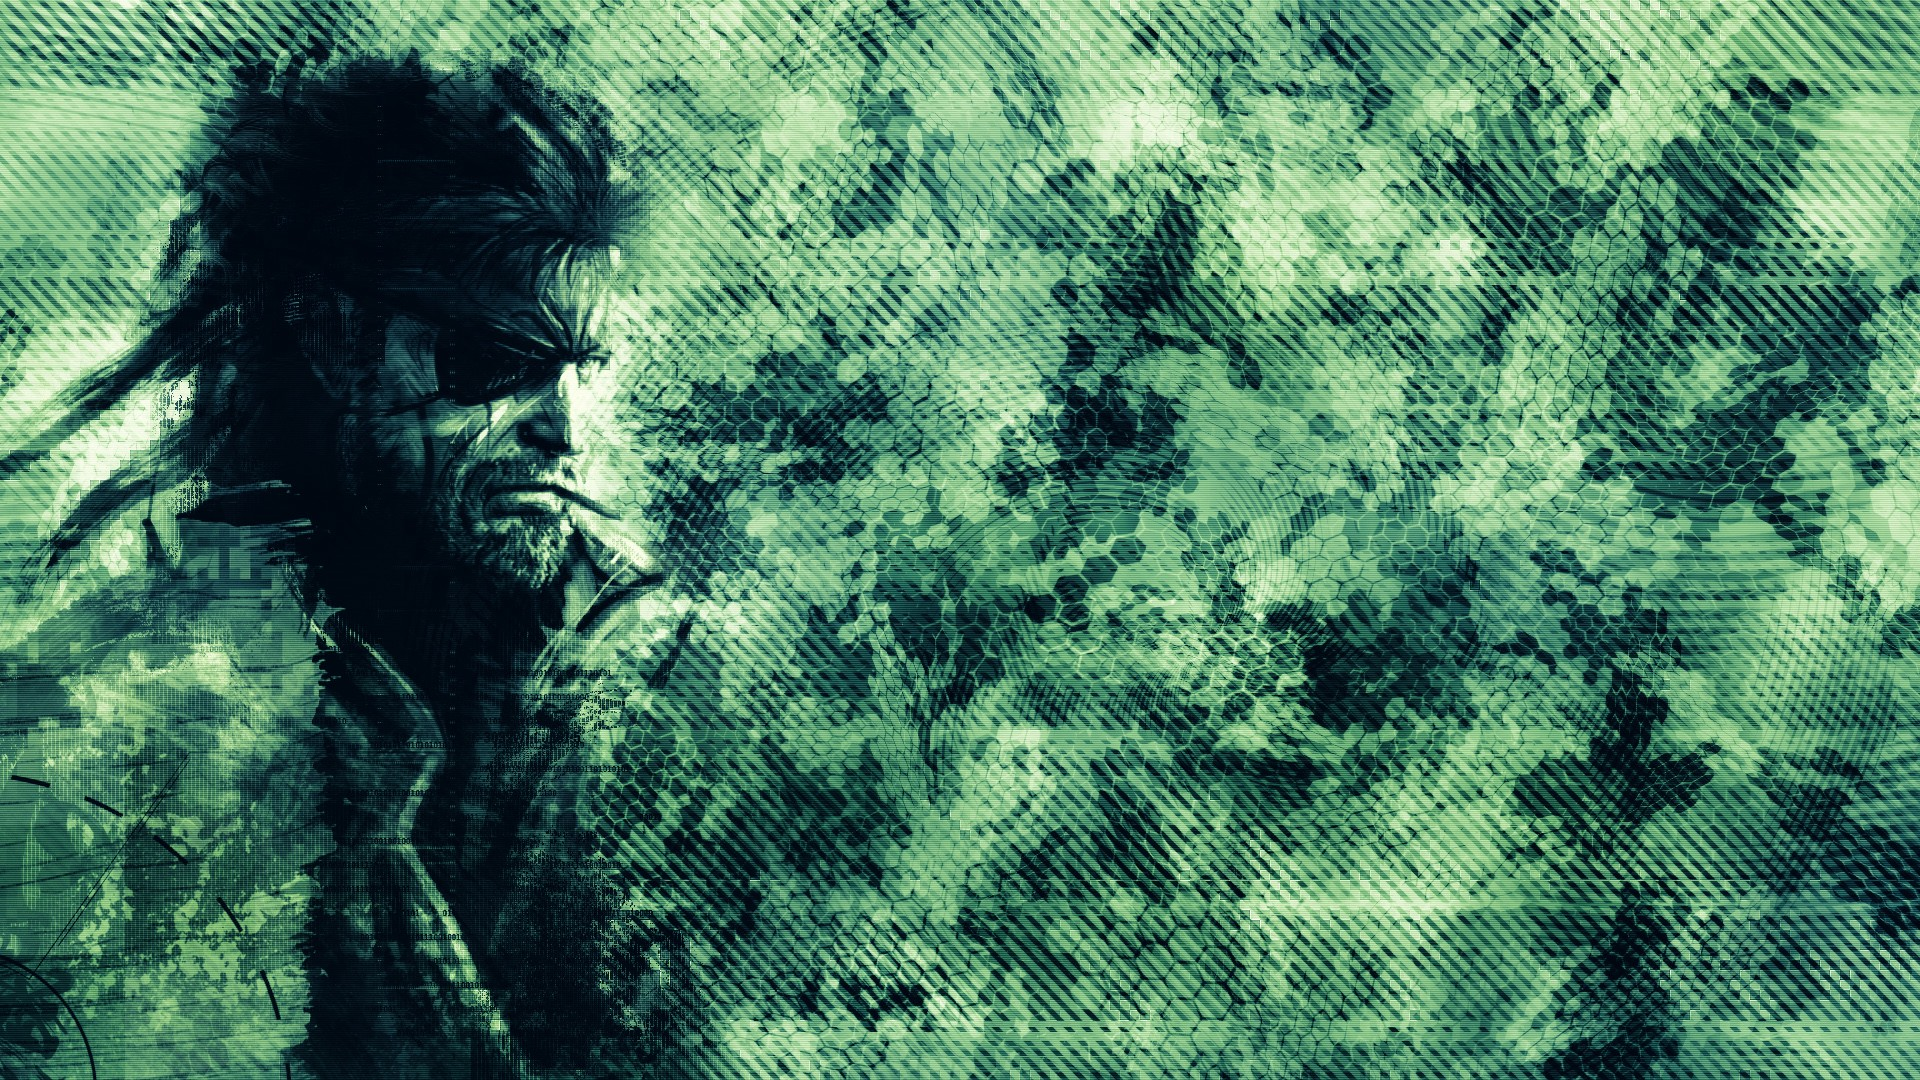 28 Free Camouflage Hd And Desktop Backgrounds: Camouflage Wallpaper ·① Download Free Full HD Wallpapers